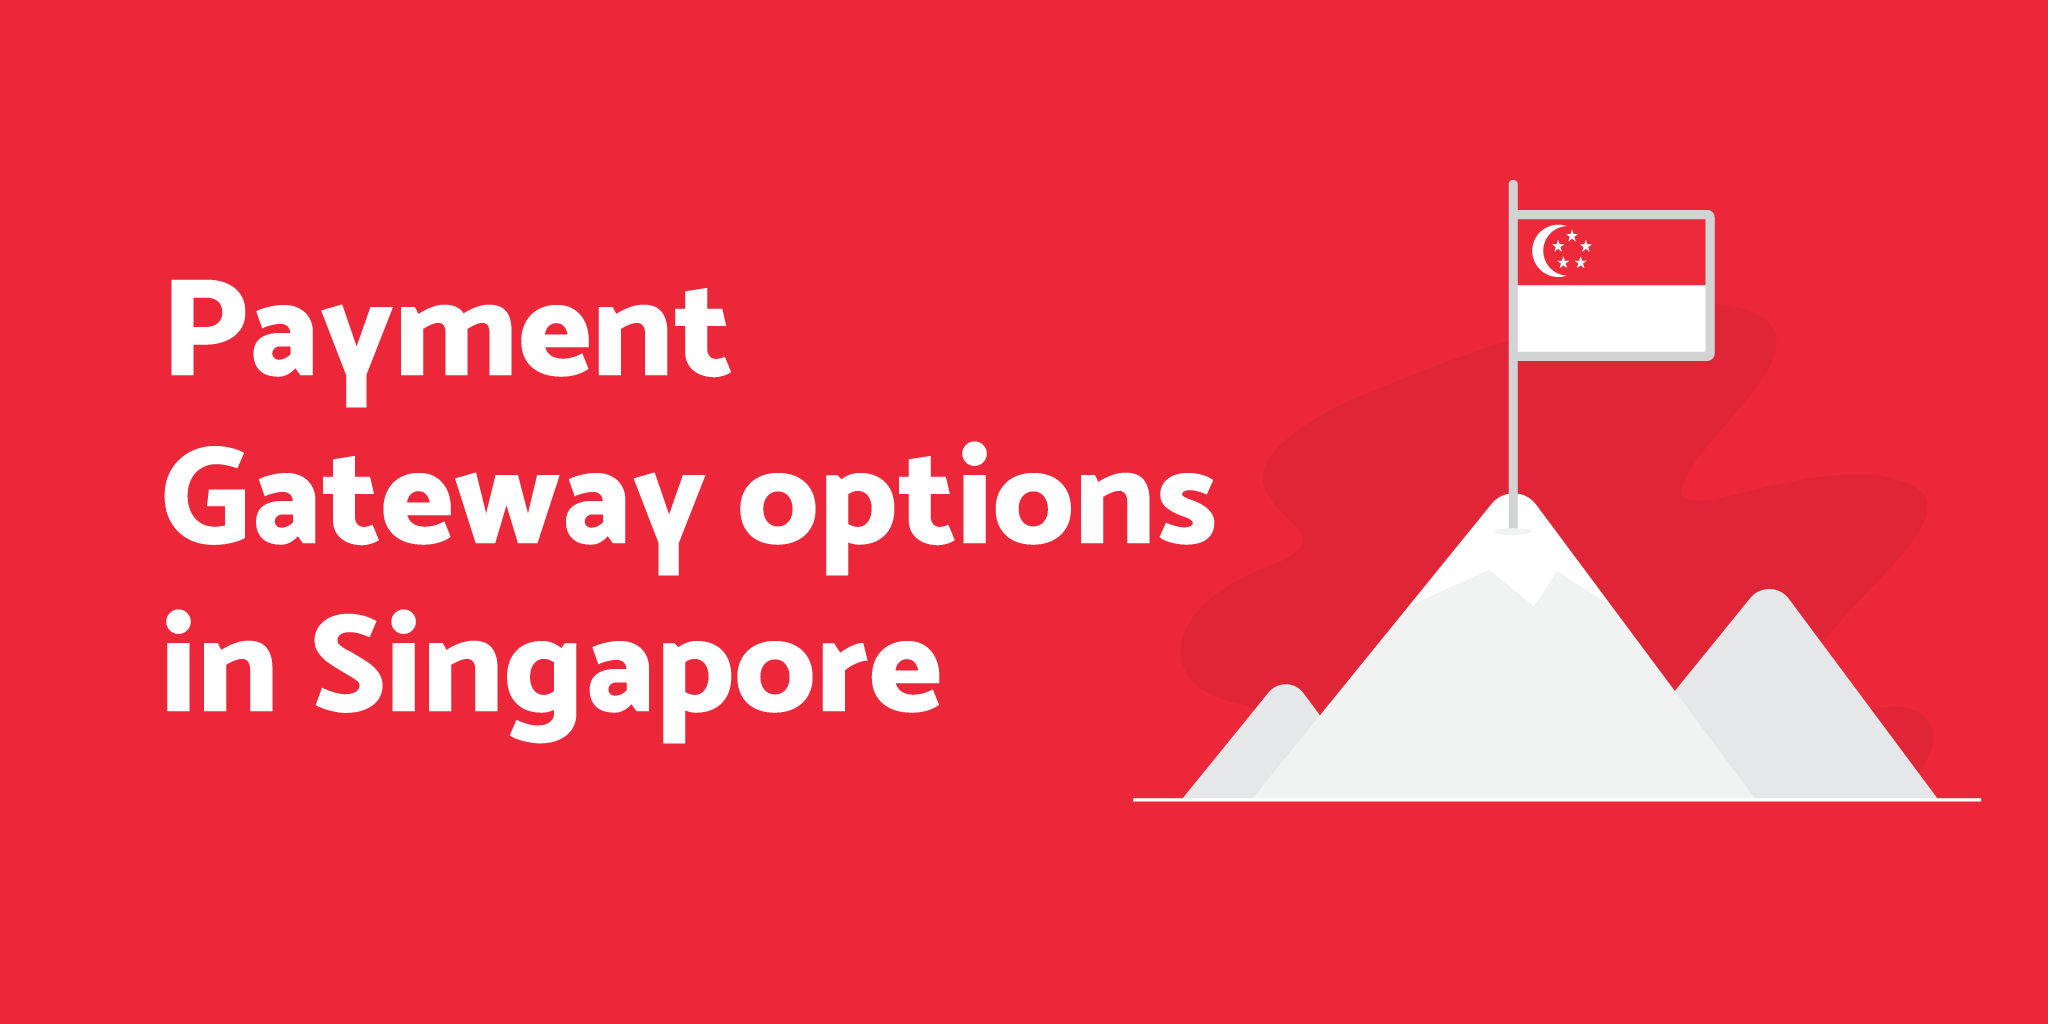 Payment Gateway Singapore giving boost to infrastructure and growth